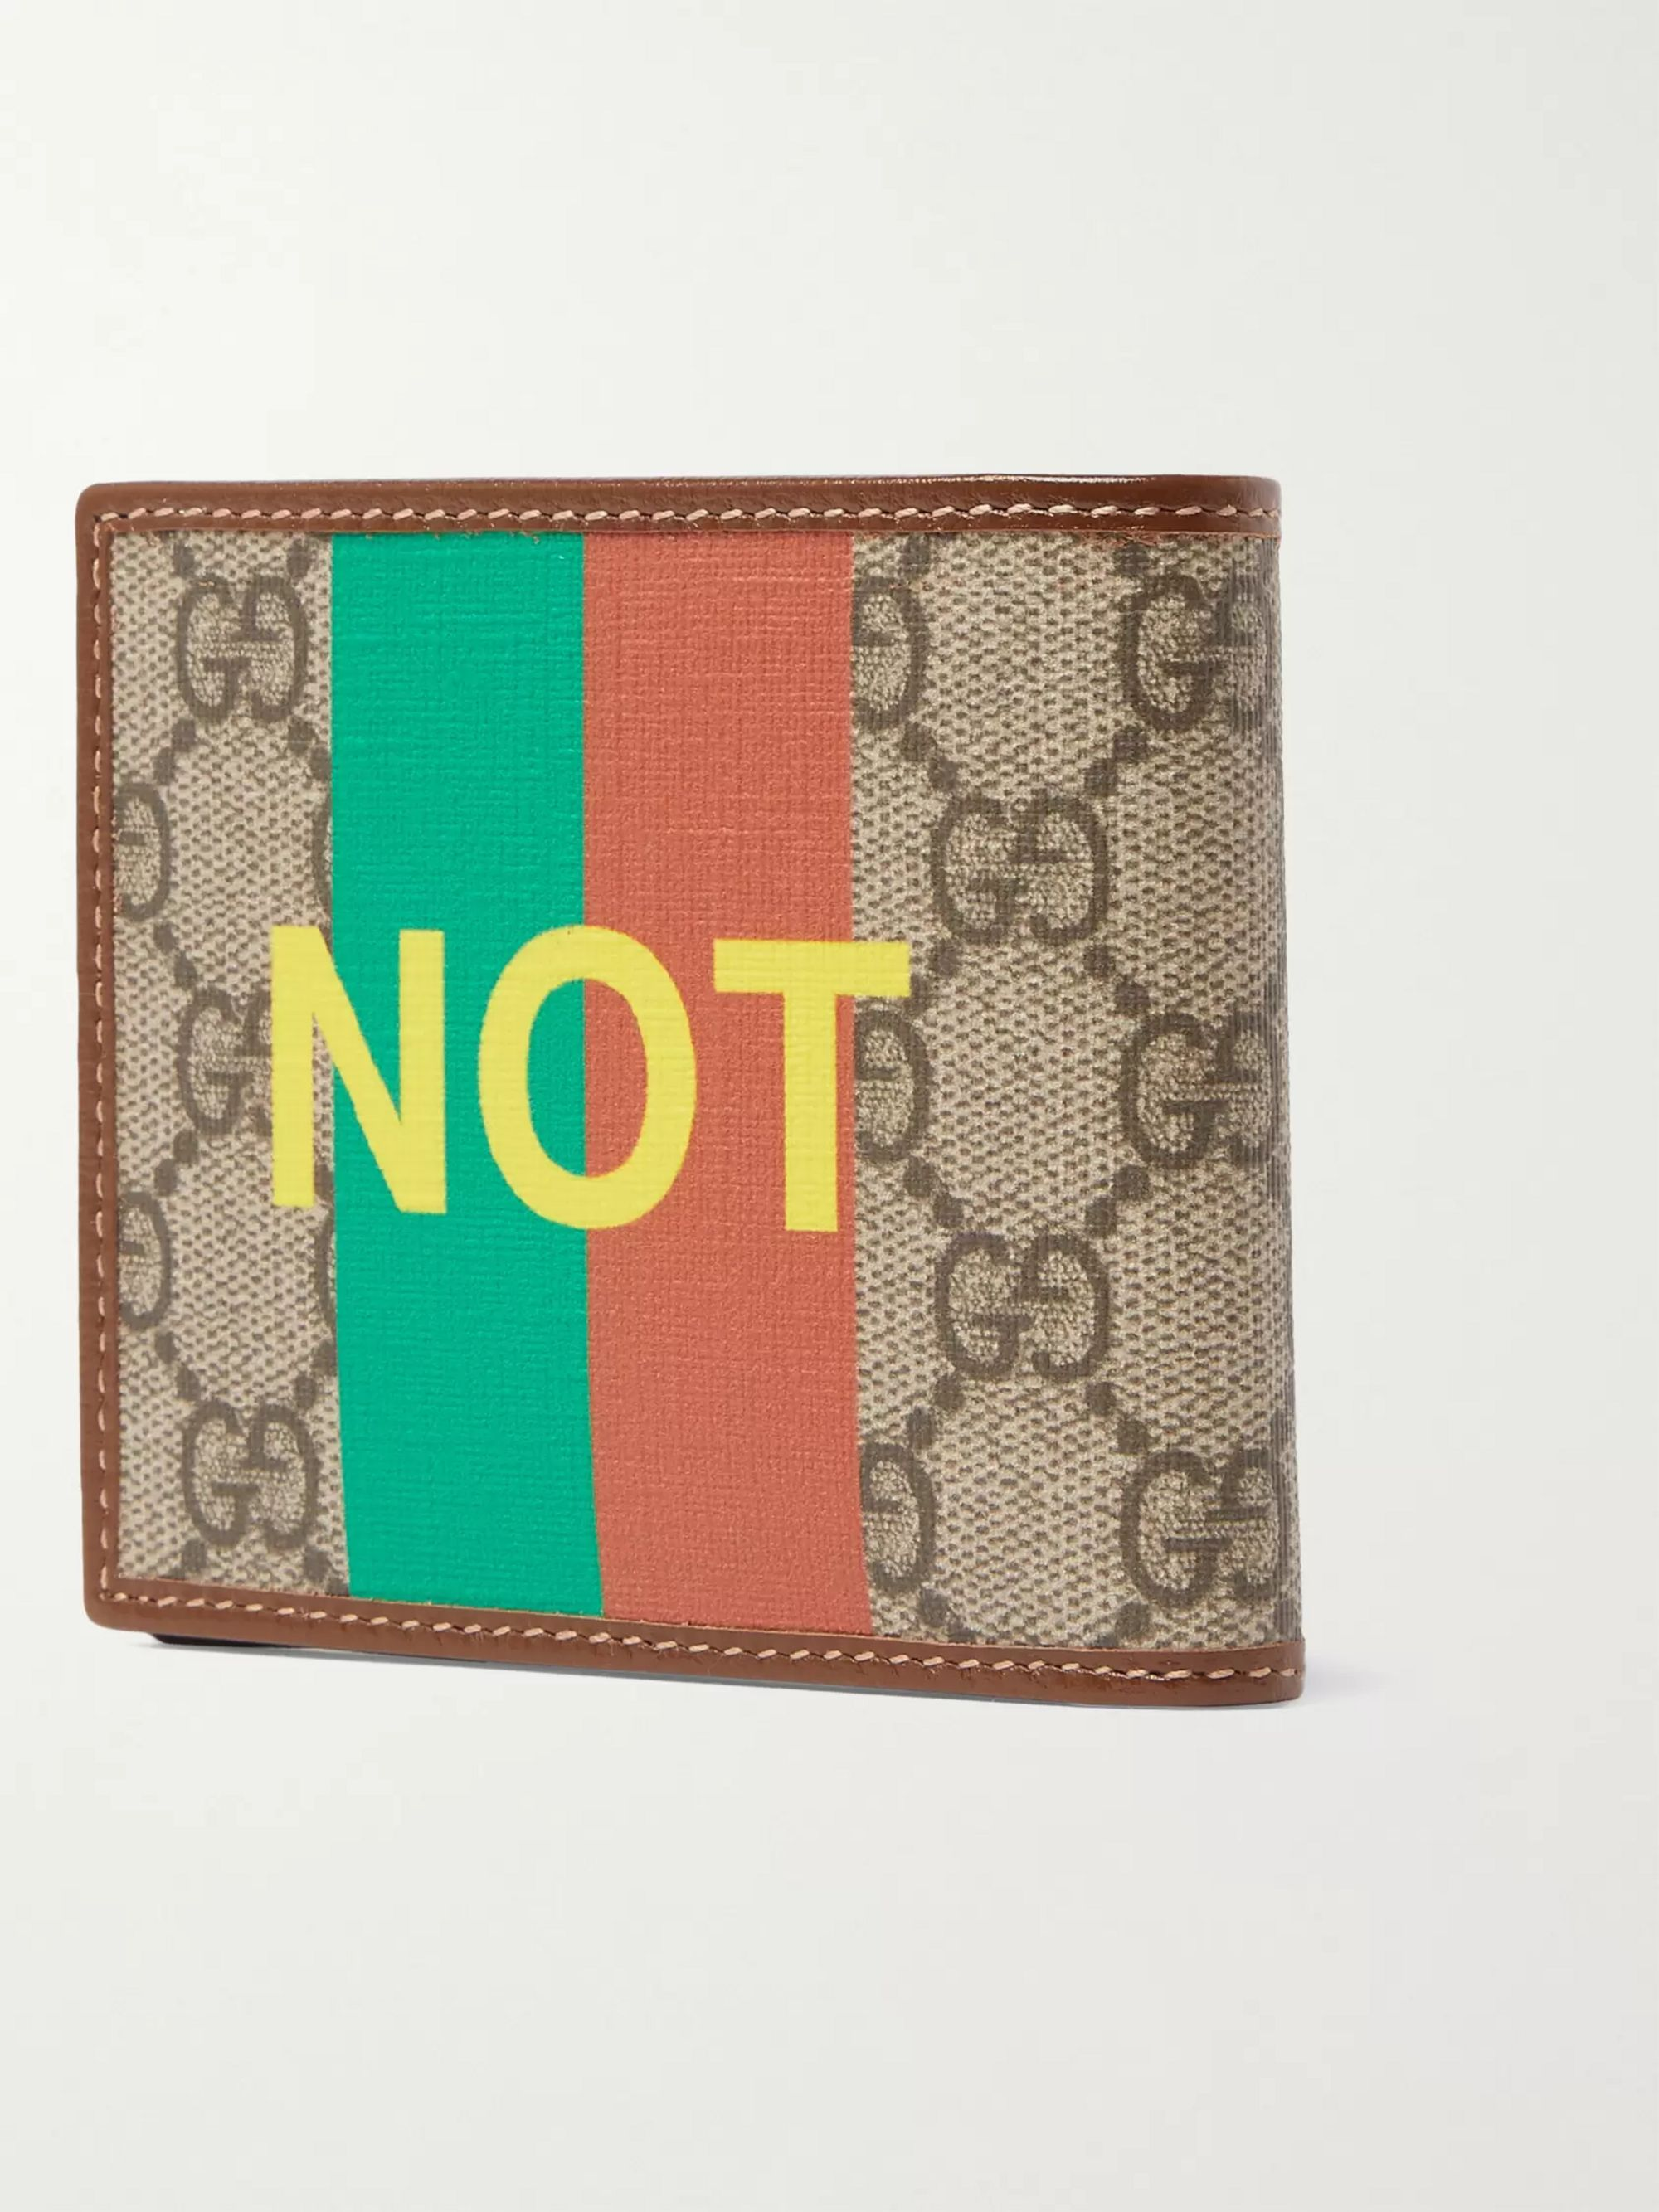 GUCCI Printed Leather-Trimmed Monogrammed Coated-Canvas Billfold Wallet